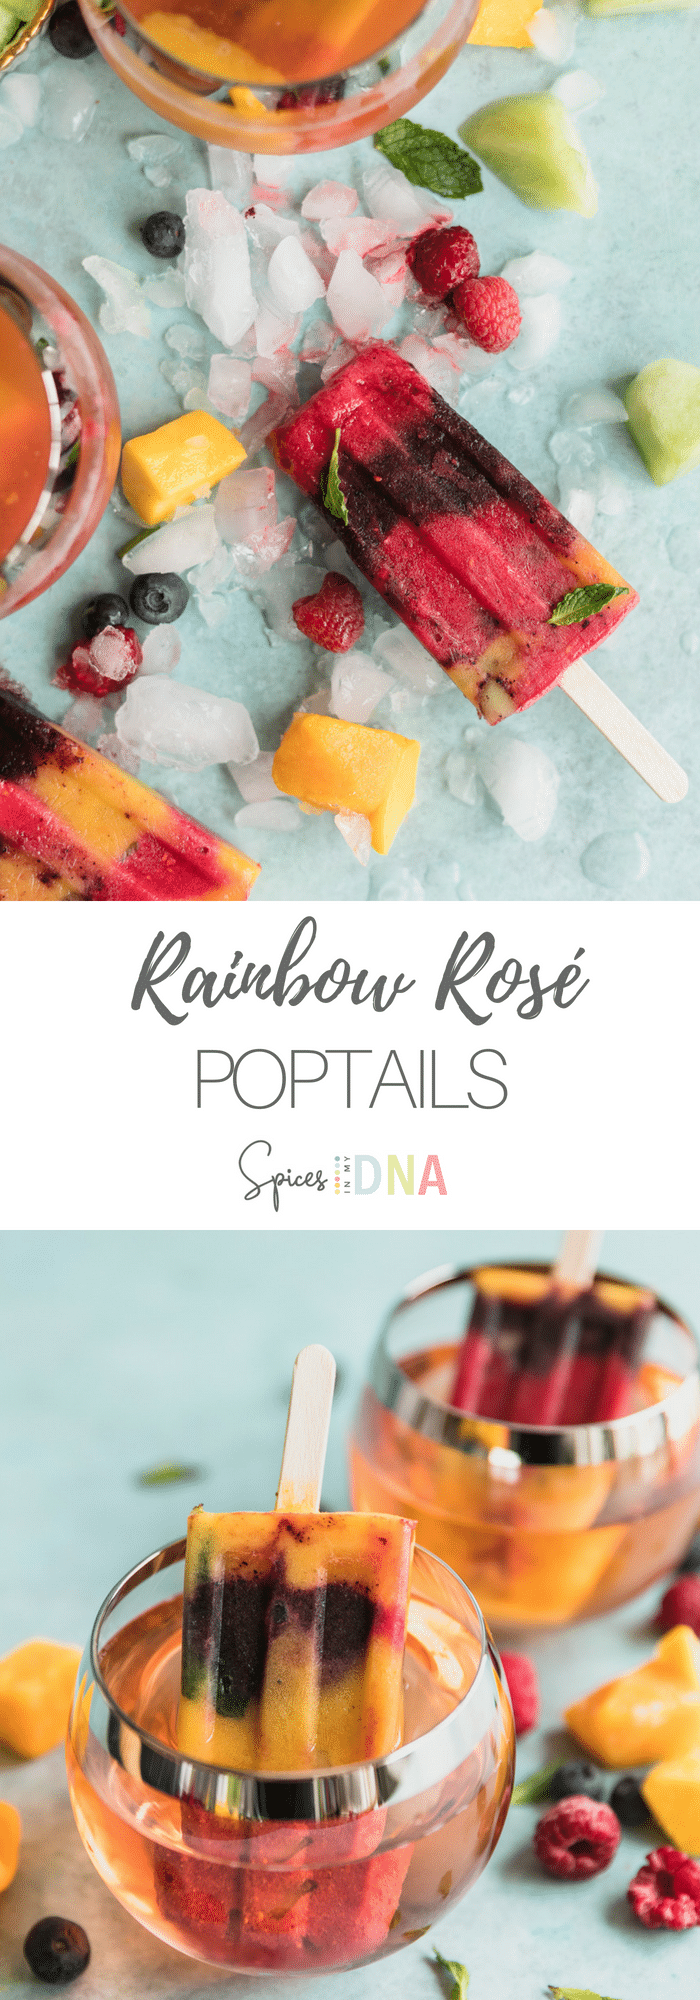 These Rainbow Rosé Poptails are the perfect summer treat! They're made with layers of frozen mango, raspberry, and blueberry purée, as well as some mint and honeydew melon! There's rosé blended into the fruit purées, so they're like a popsicle and cocktail in one! #popsicle #cocktail #rosé